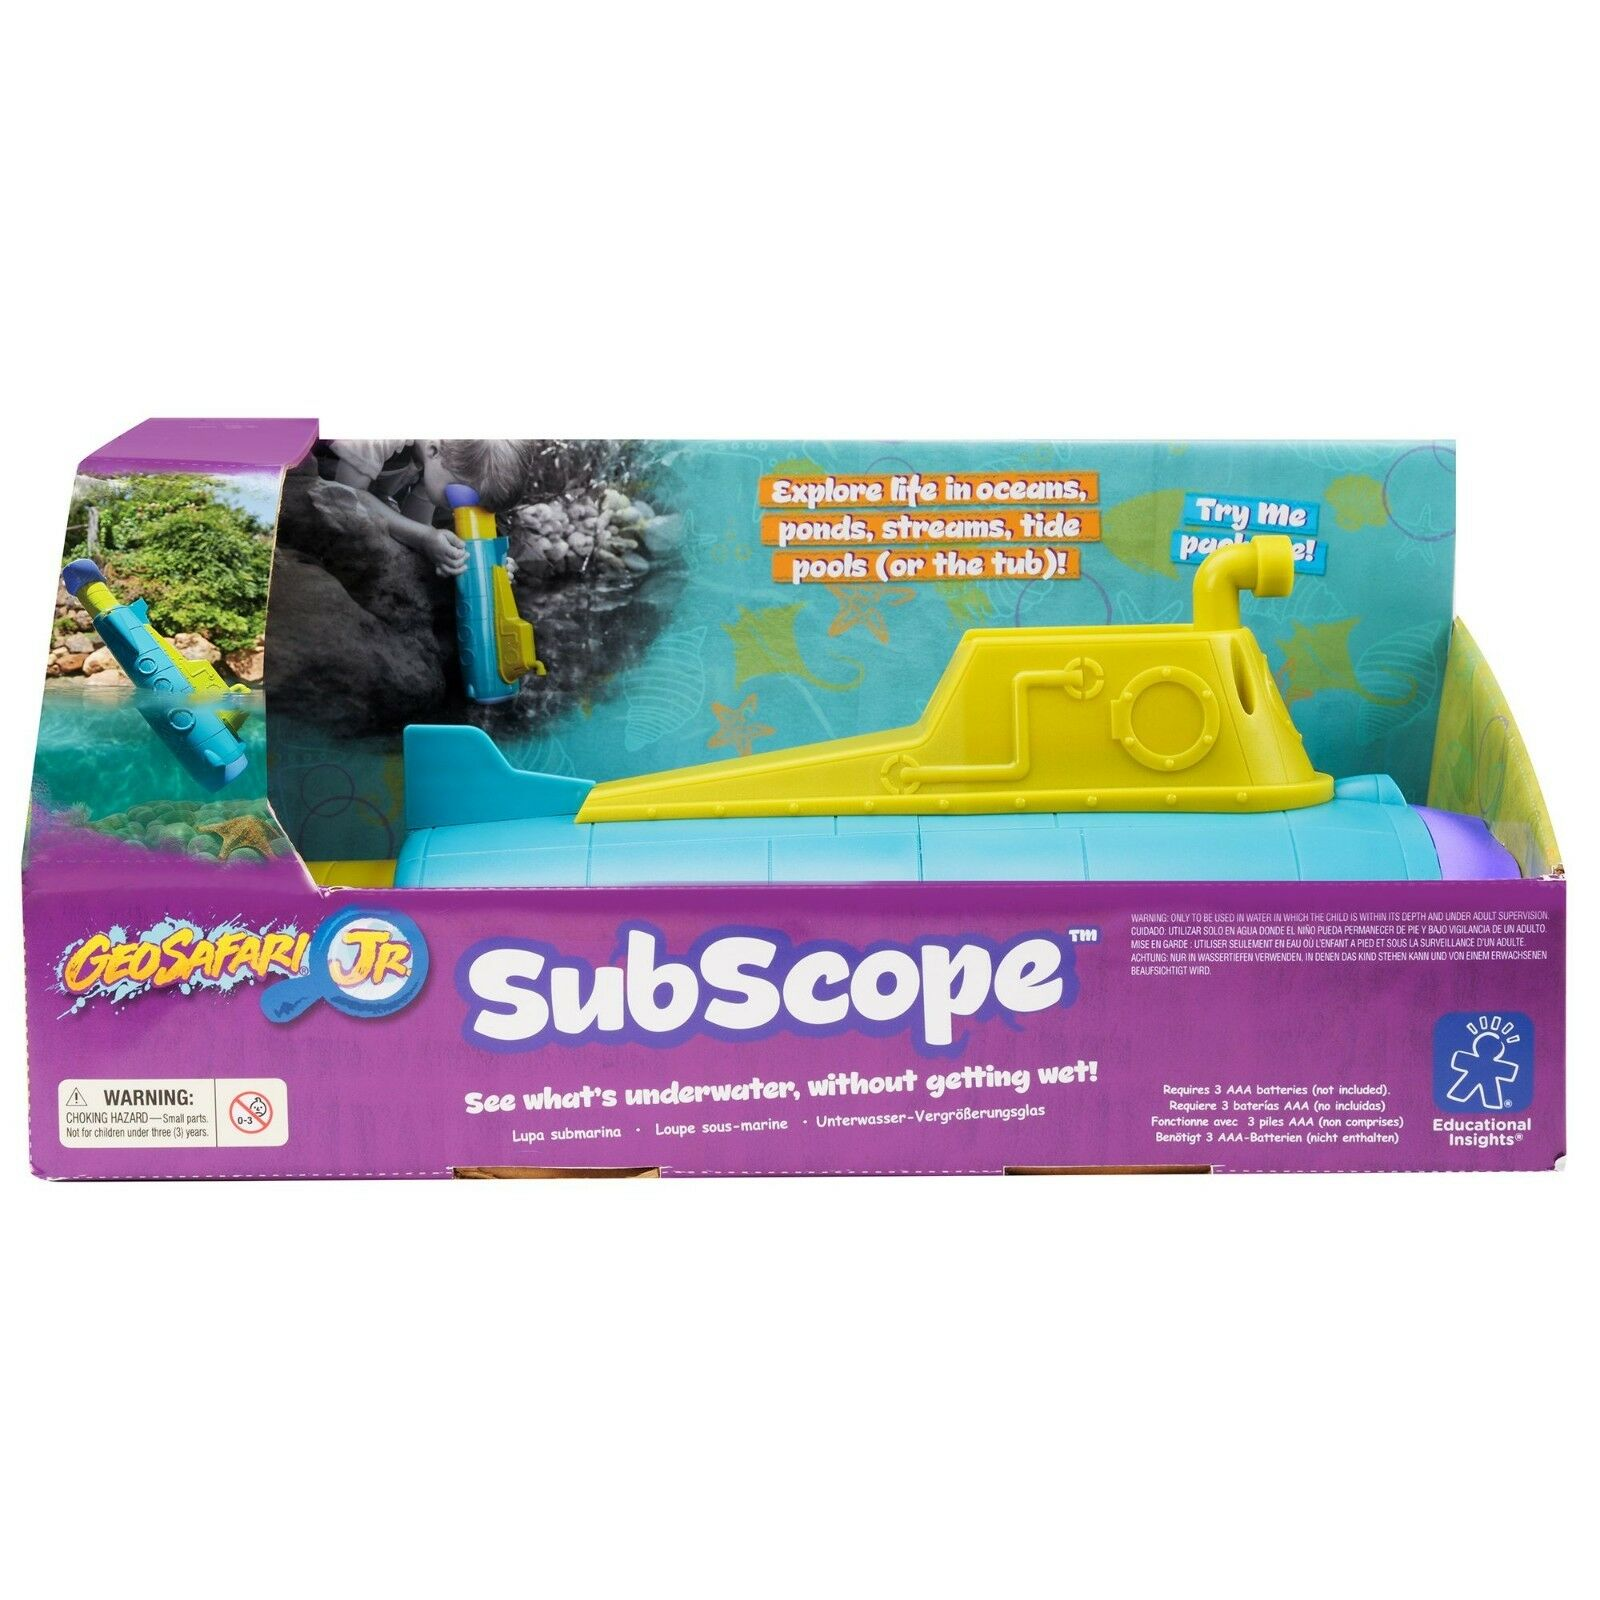 Educational Insights GeoSafari Junior SubScope STEM Learning Toy See Underwater